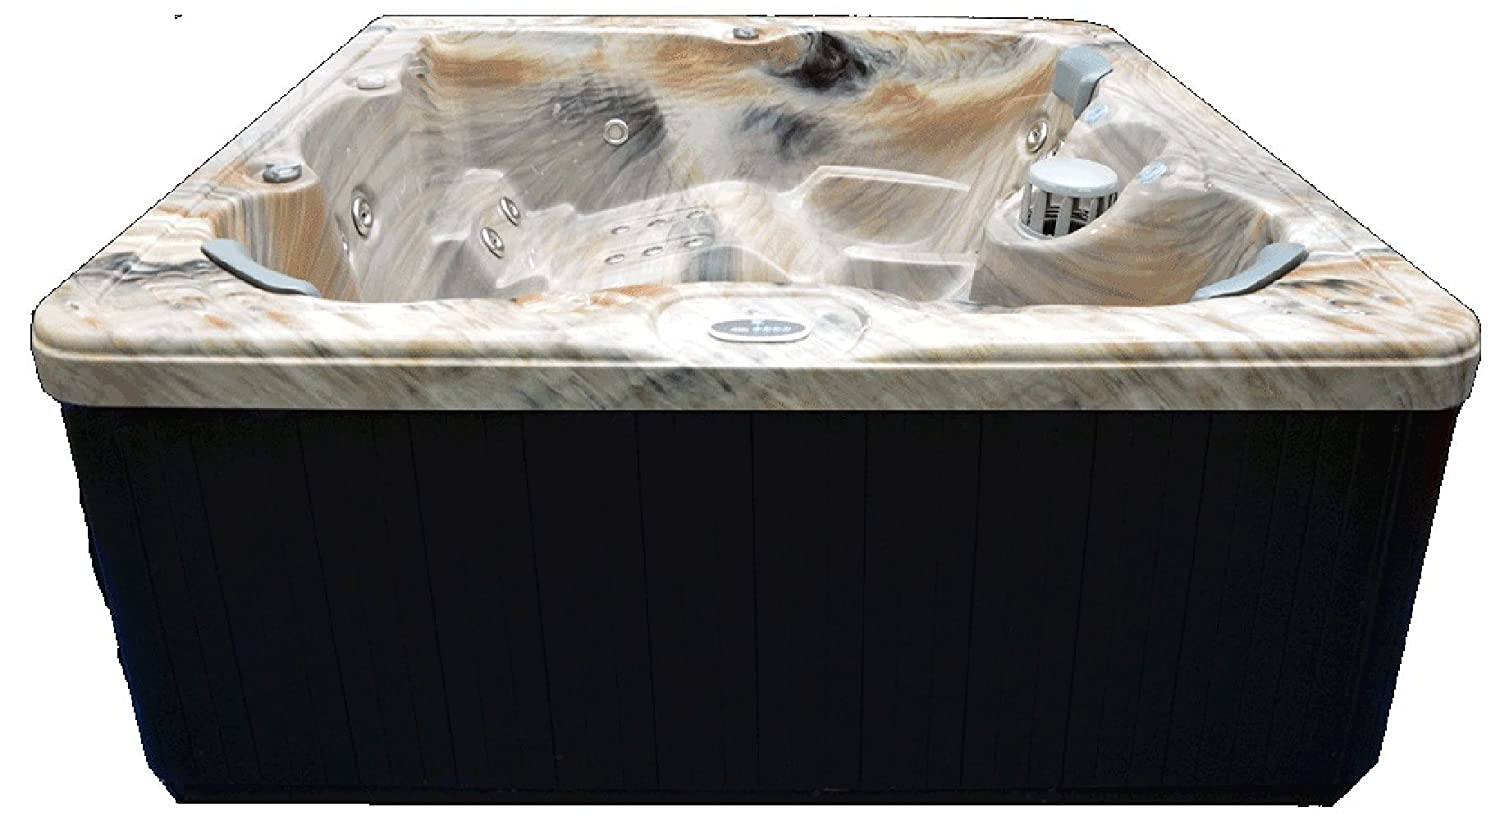 """6 Person 51 Outdoor Spa with Stainless Jets & Ozone, 82"""" x 82"""" x 35"""", Tuscan Sun"""